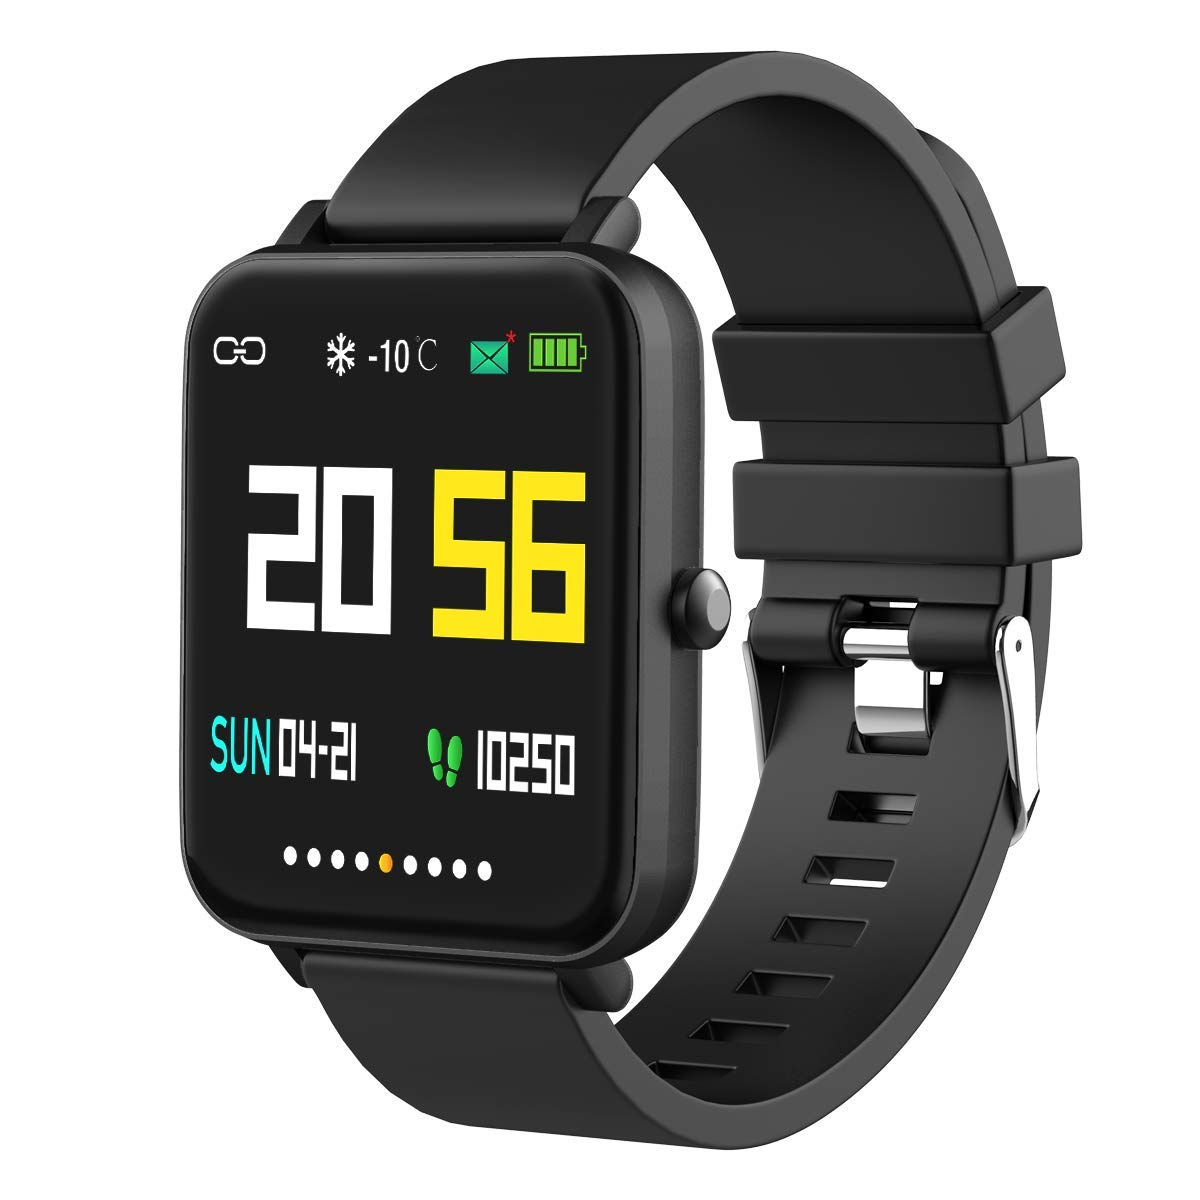 foronechi-smart-watch-for-androidsamsungiphone-activity-fitness-tracker-with-ip68-waterproof-for-men-women-smartwatch-with-154-full-touch-color-screen-heart-rate-sleep-monitor-bla